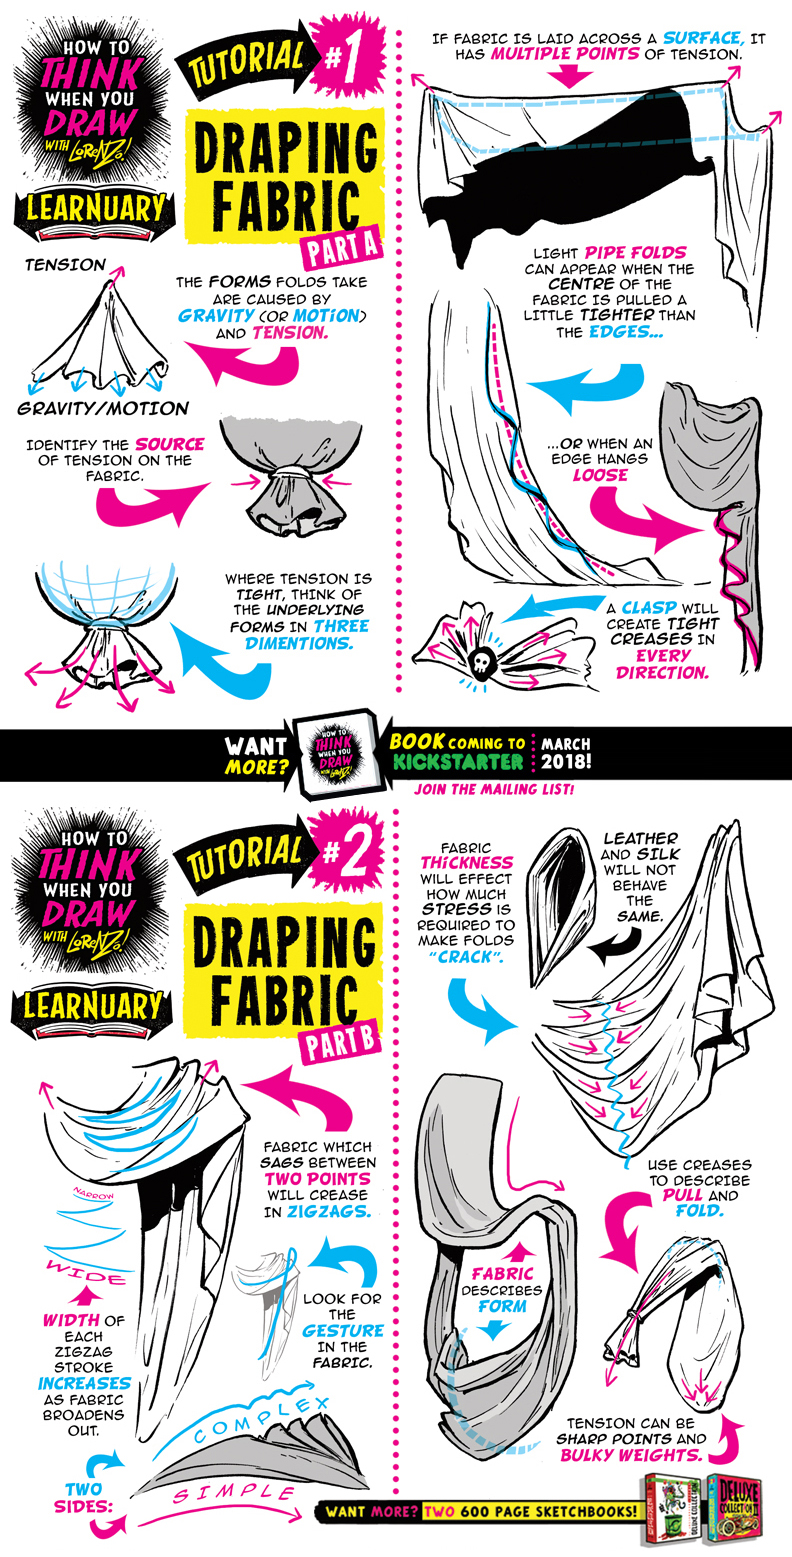 How to draw DRAPING FABRIC tutorial by STUDIOBLINKTWICE